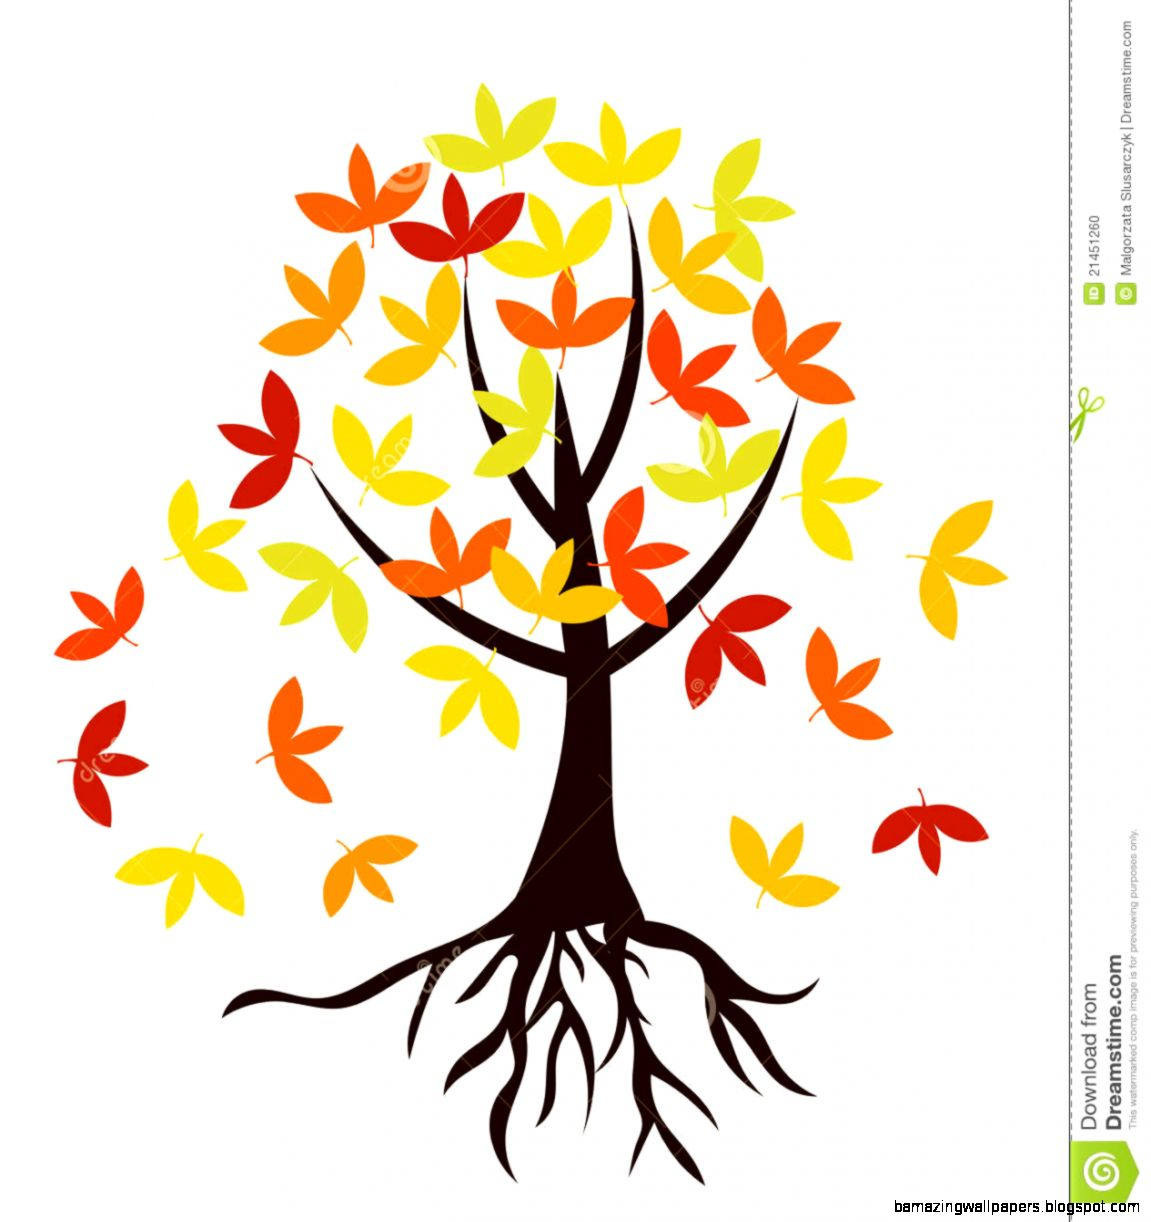 Roots Of A Tree In Fall Colors Royalty Free Stock Photo   Image